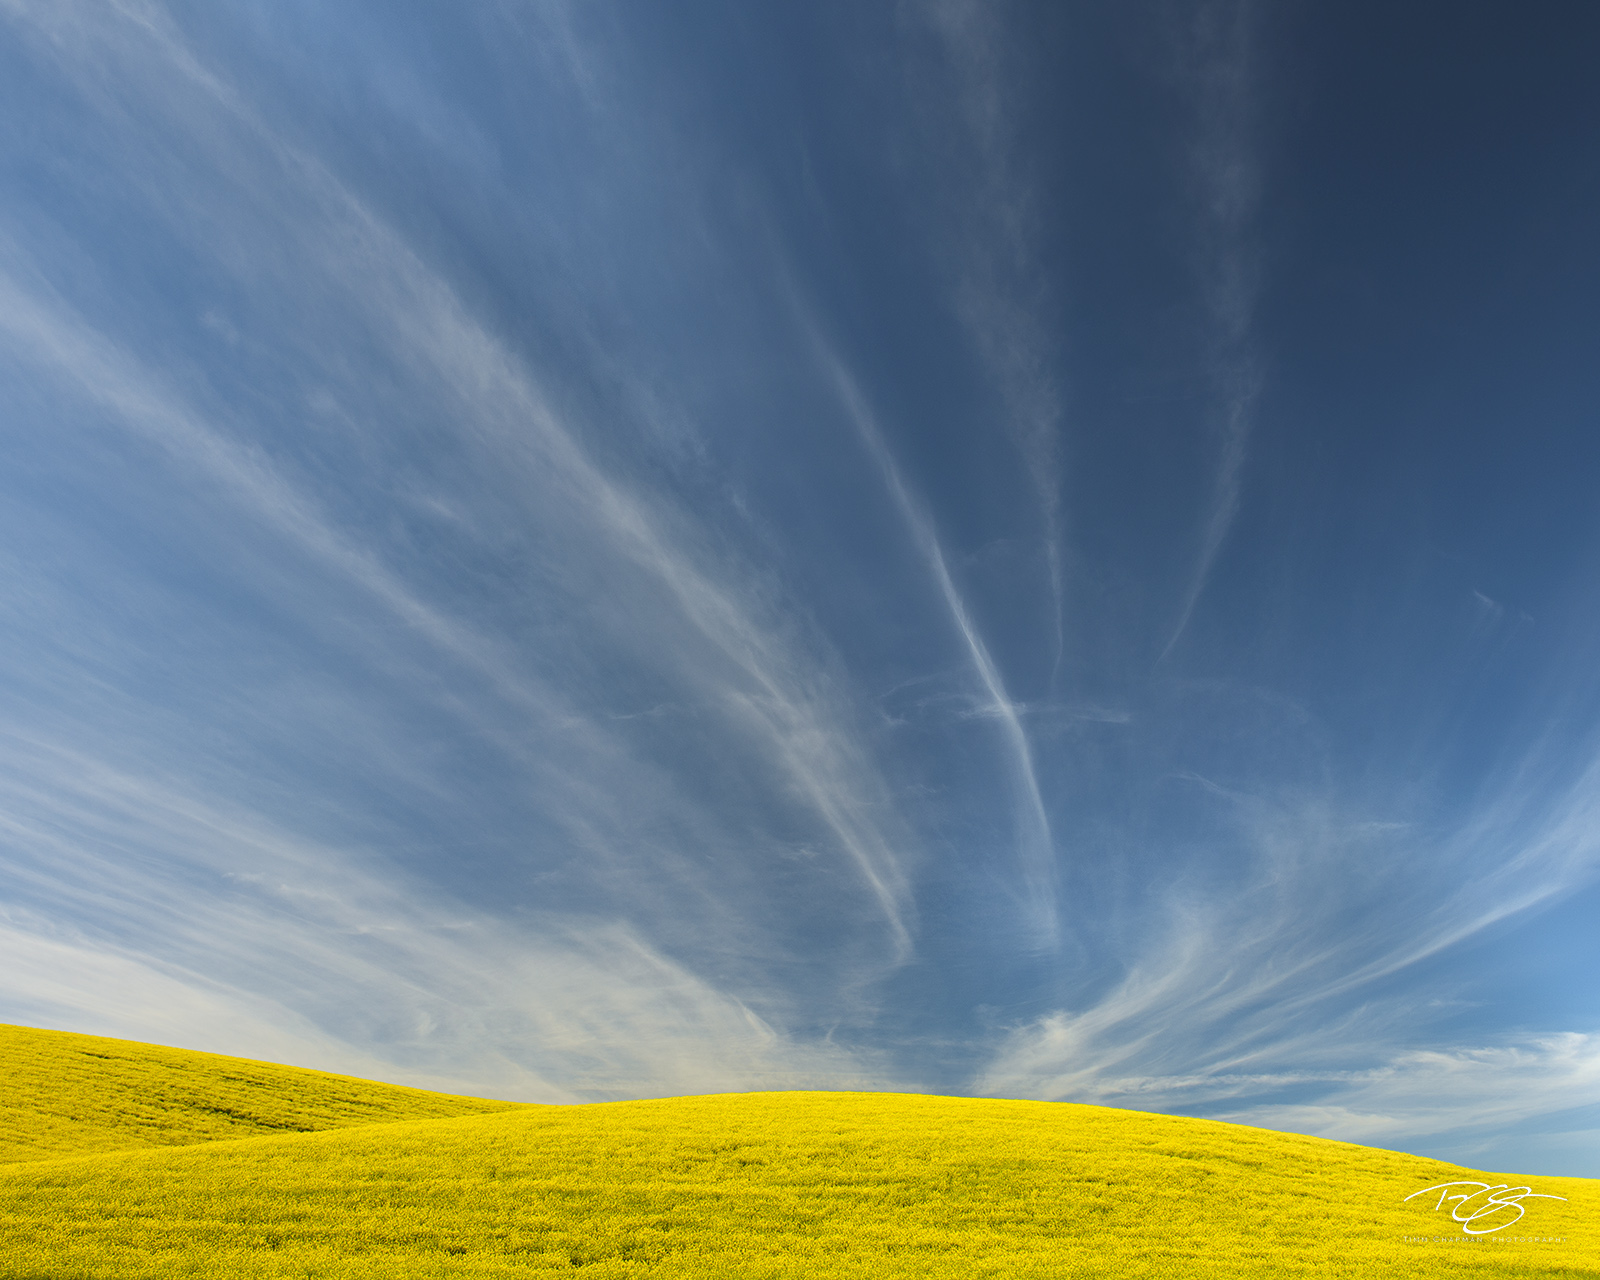 Canola, farm, sky, blue sky, palouse, farmland, field of gold, stratus clouds, wispy, horestail, clouds, canola in bloom, photo